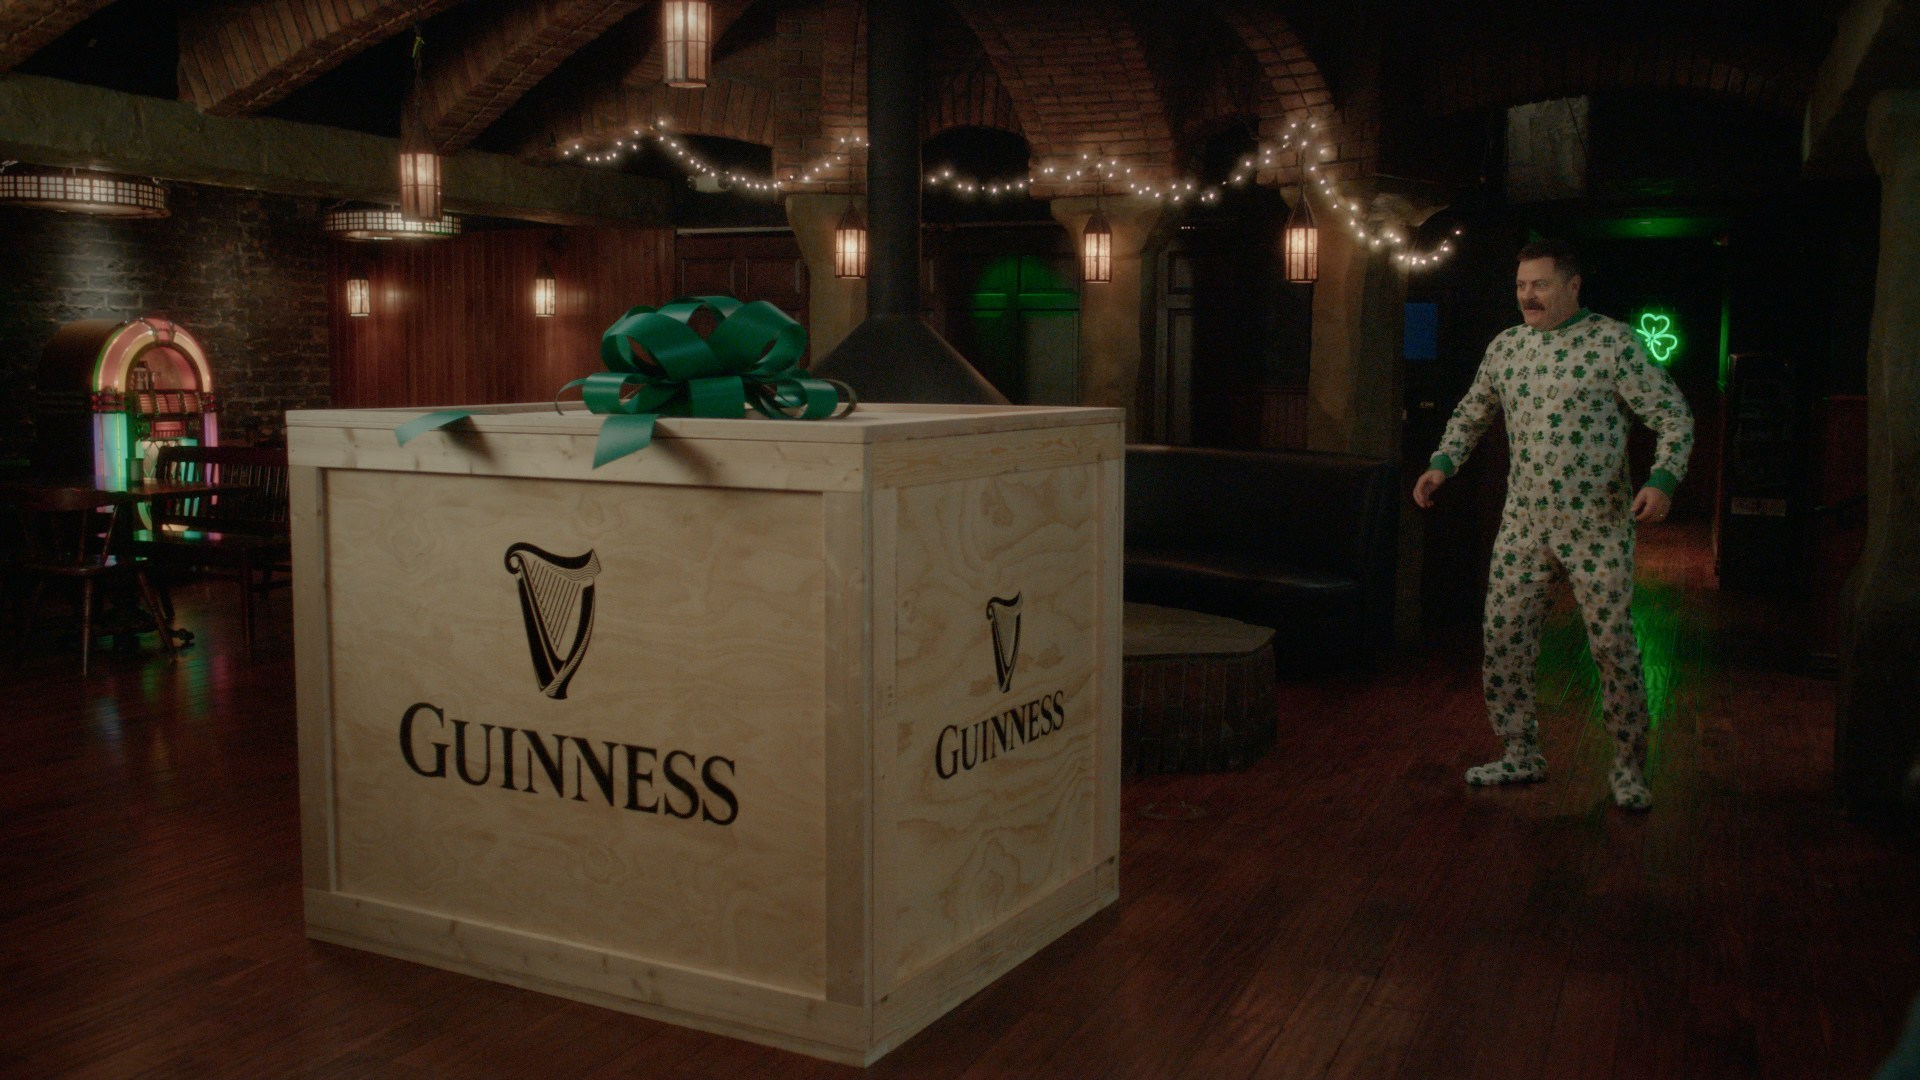 Guinness x Nick Offerman - Unboxing